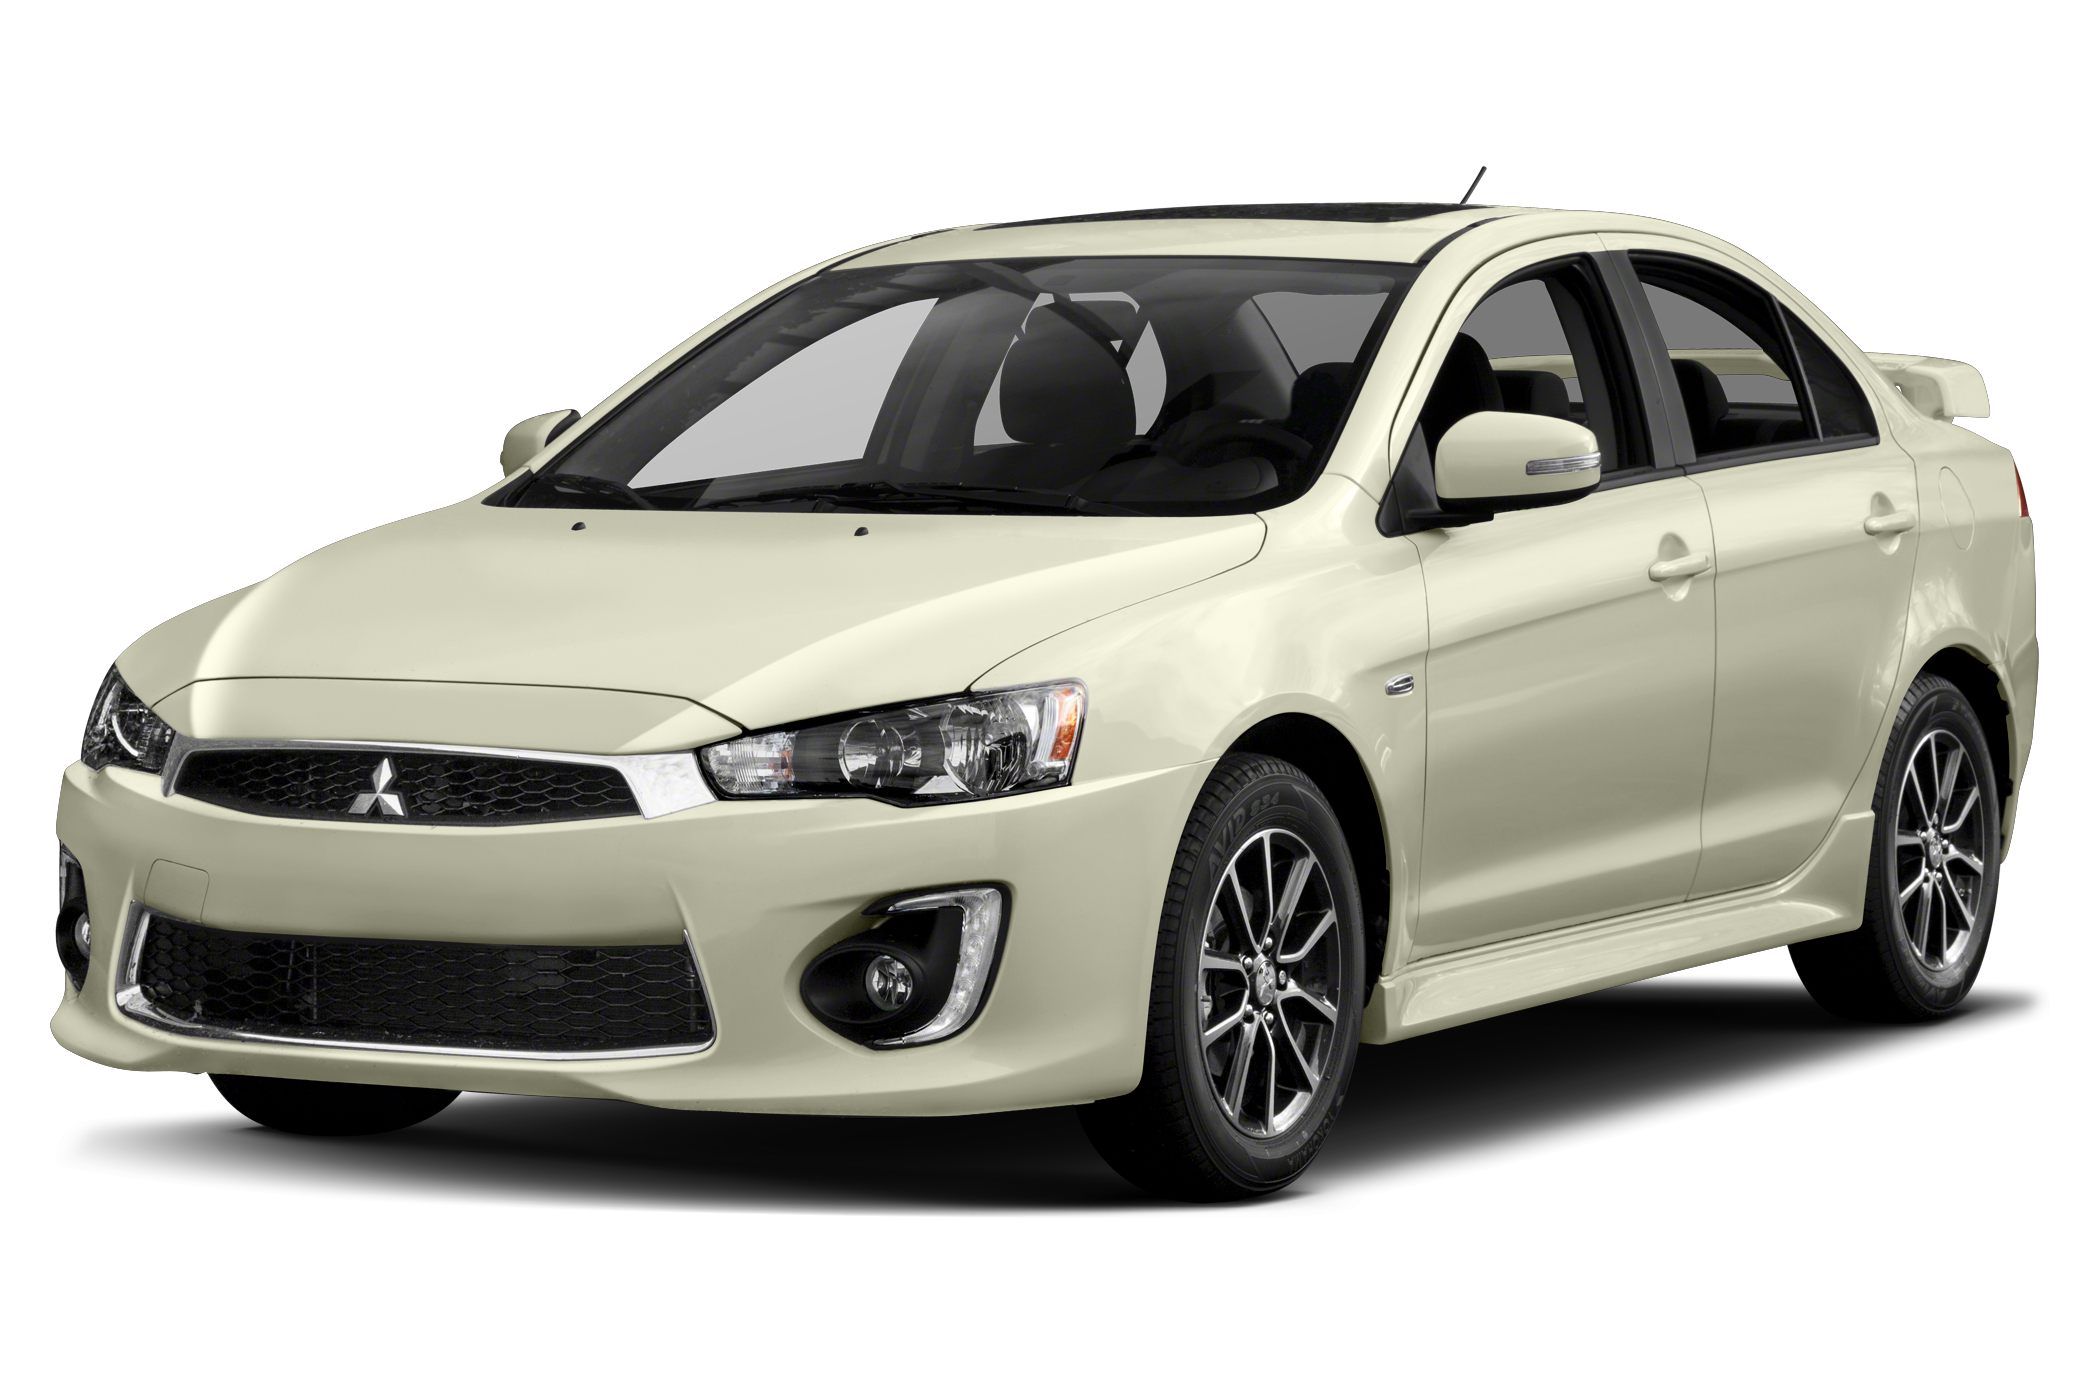 2018 Mitsubishi Lancer Evolution Ralliart Styling Review | 2017 - 2018 Best Cars Reviews